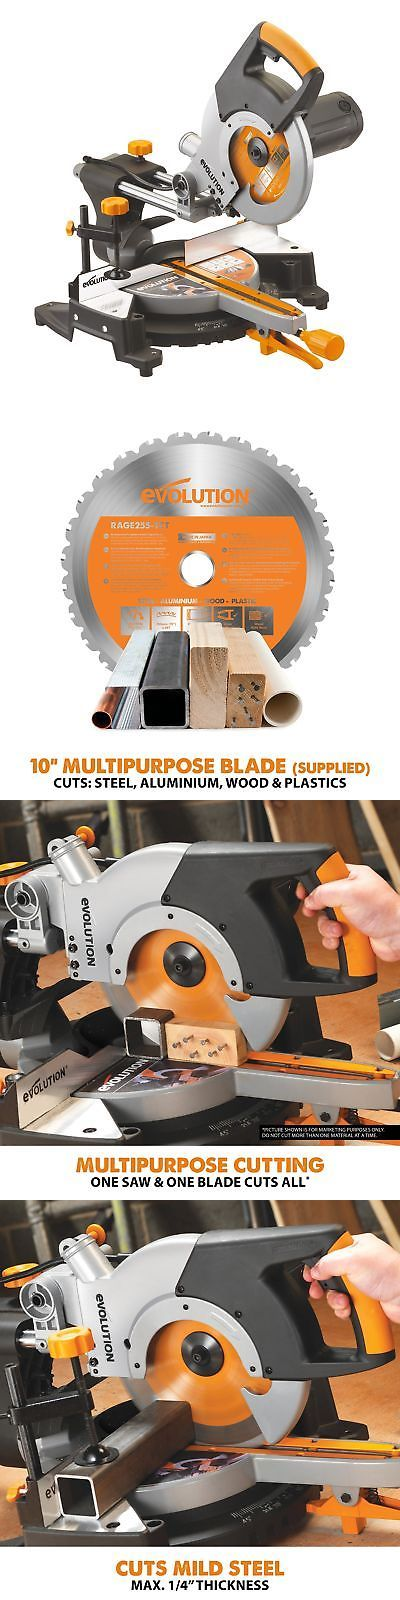 Miter and Chop Saws 20787: Evolution Power Tools Rage3 10-Inch Multipurpose Cutting Compound Sliding Miter -> BUY IT NOW ONLY: $227.79 on eBay!